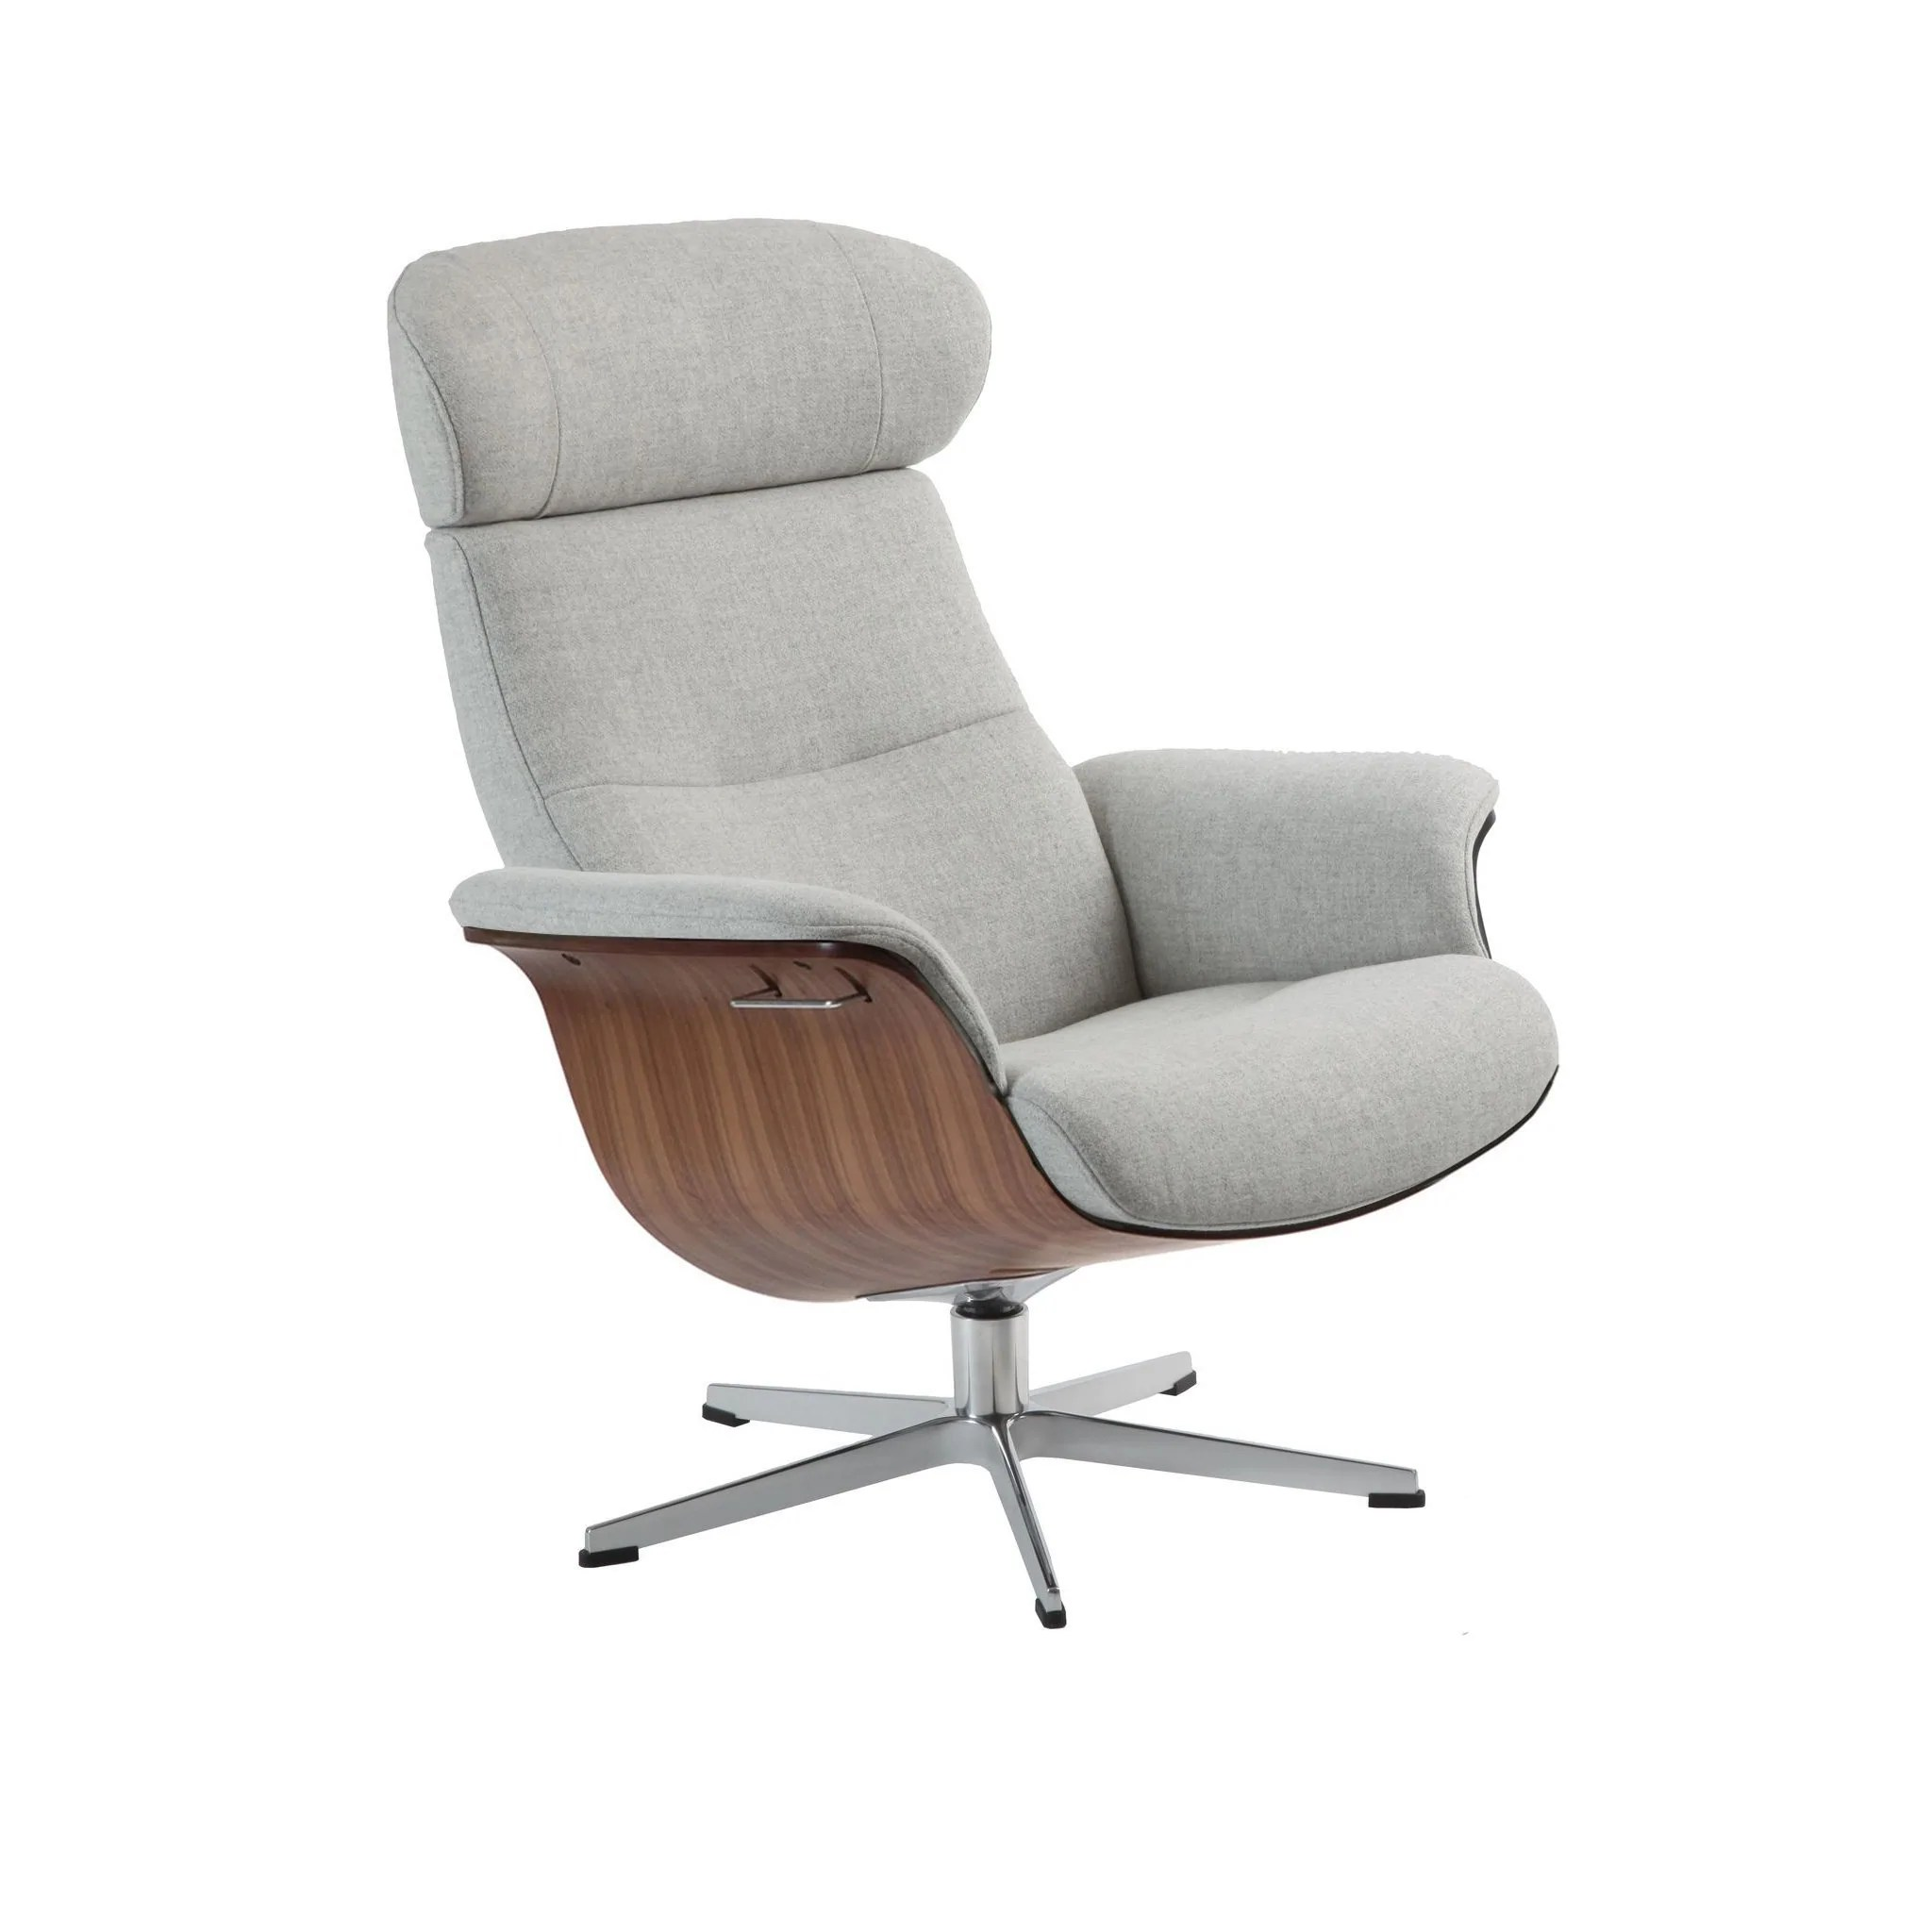 Sessel Mit Beinauflage Relaxsessel Timeout Shefford Lightgray